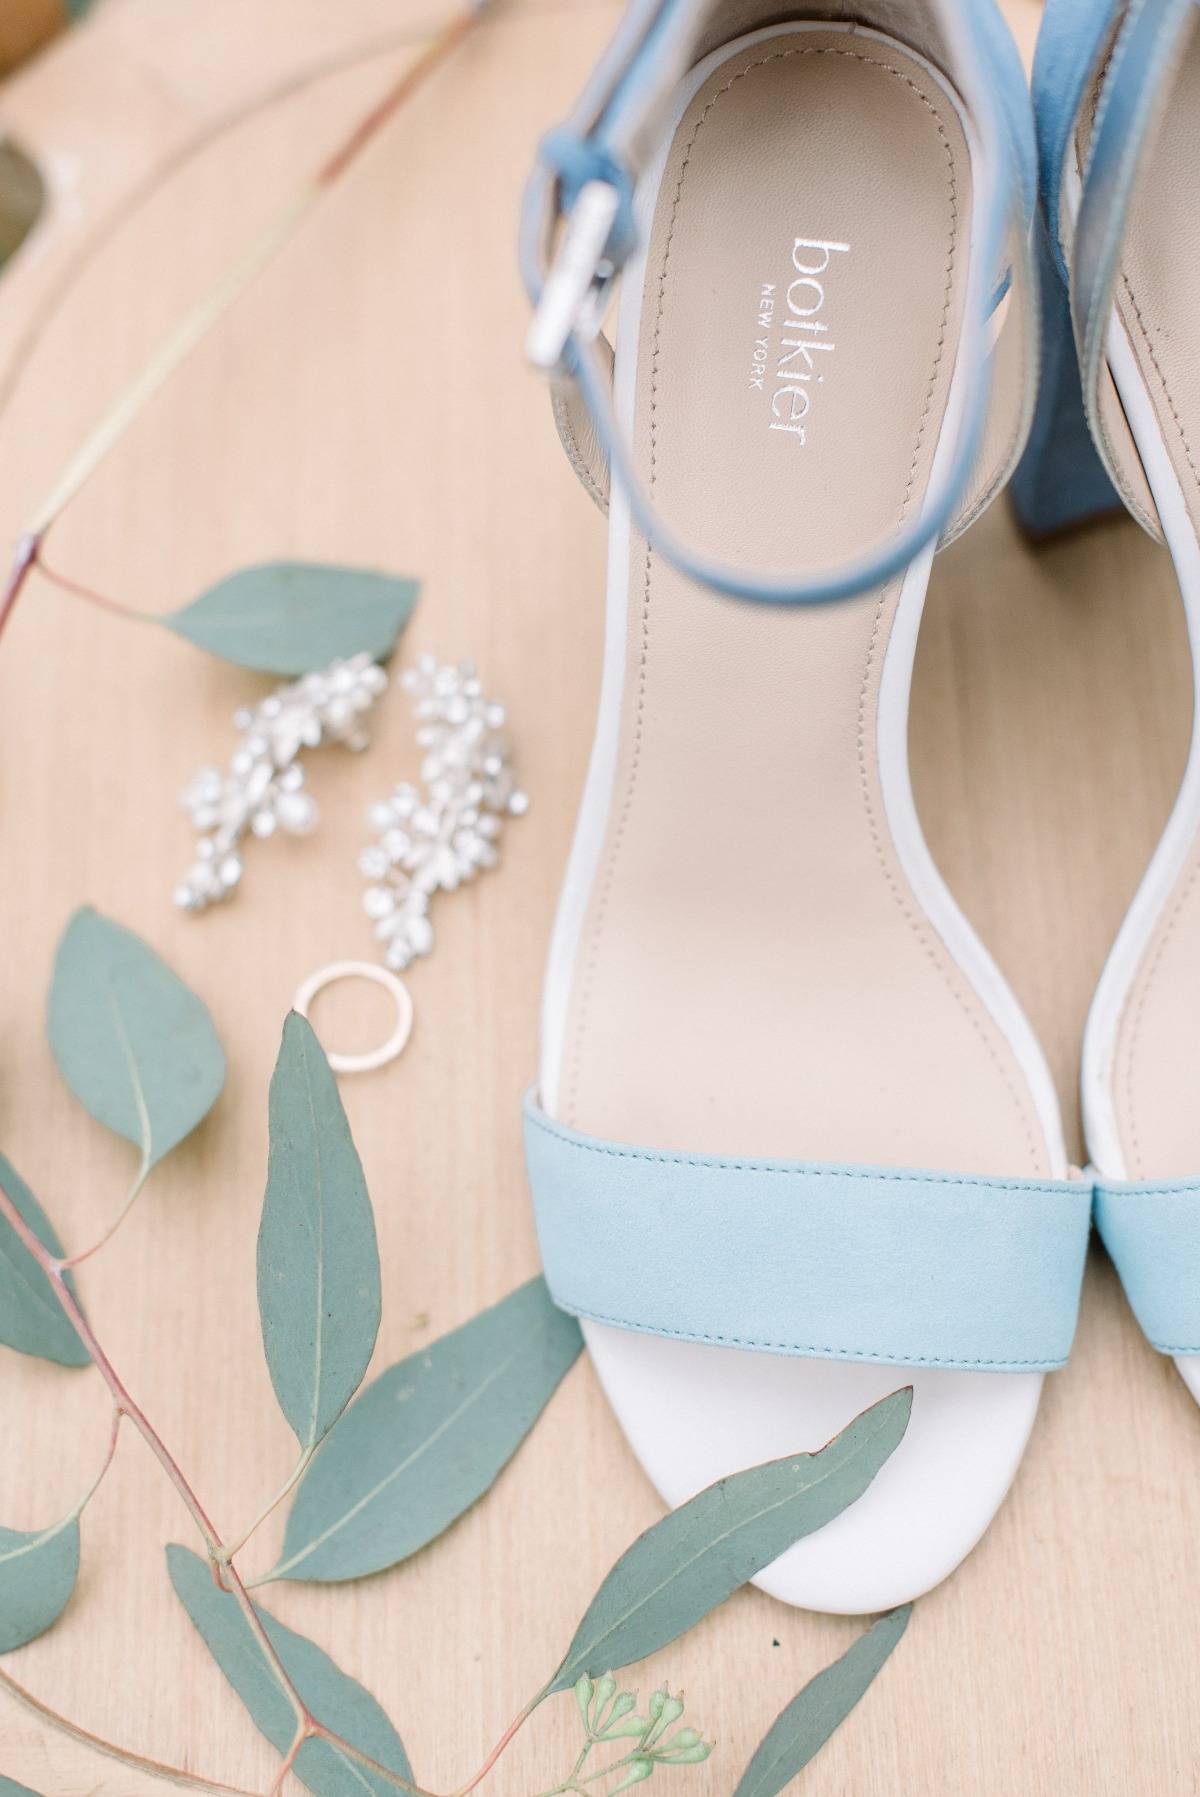 8694affd204 How To Have The Romantic Pastel Wedding Of Your Dreams